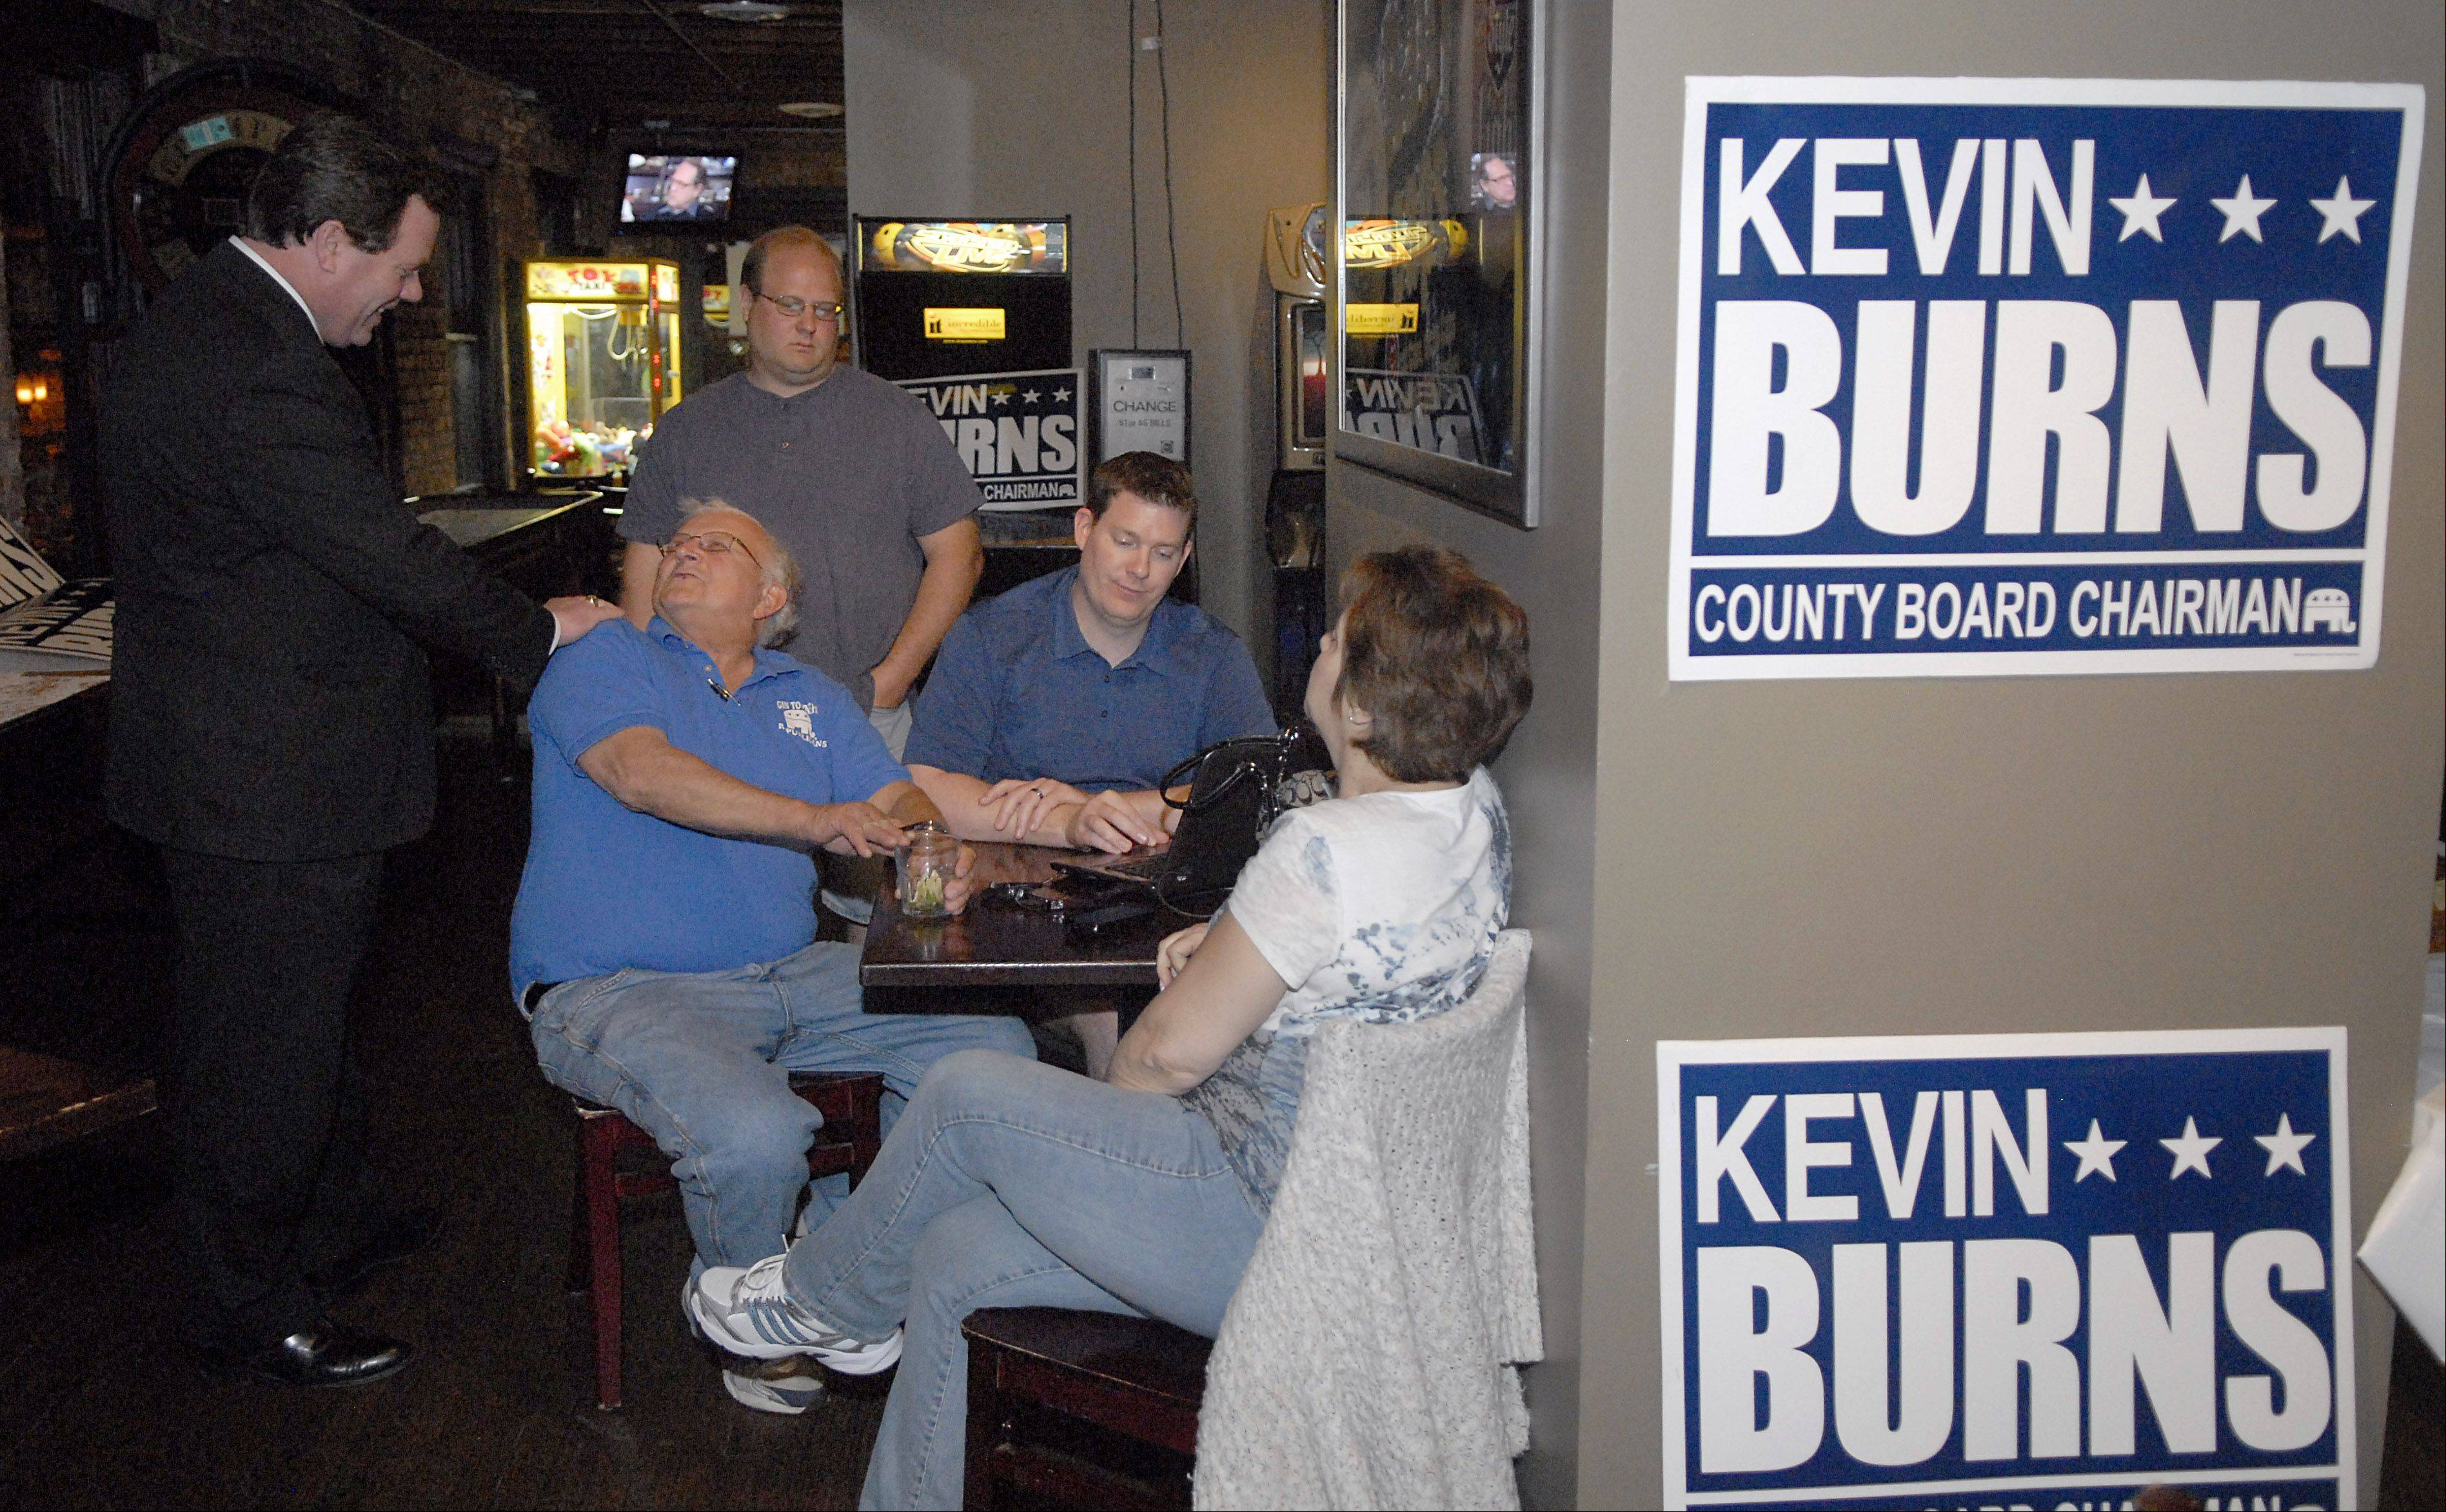 While campaign staffer Chris Brown checks results, Kane County Board Chairman Republican candidate Kevin Burns jokes with Kane County Board member Mike Kenyon of South Elgin at his election night party in Geneva on Tuesday. Jerry Cass of Geneva and Batavia Township Chairman Ellen Notke also wait for results to come in.